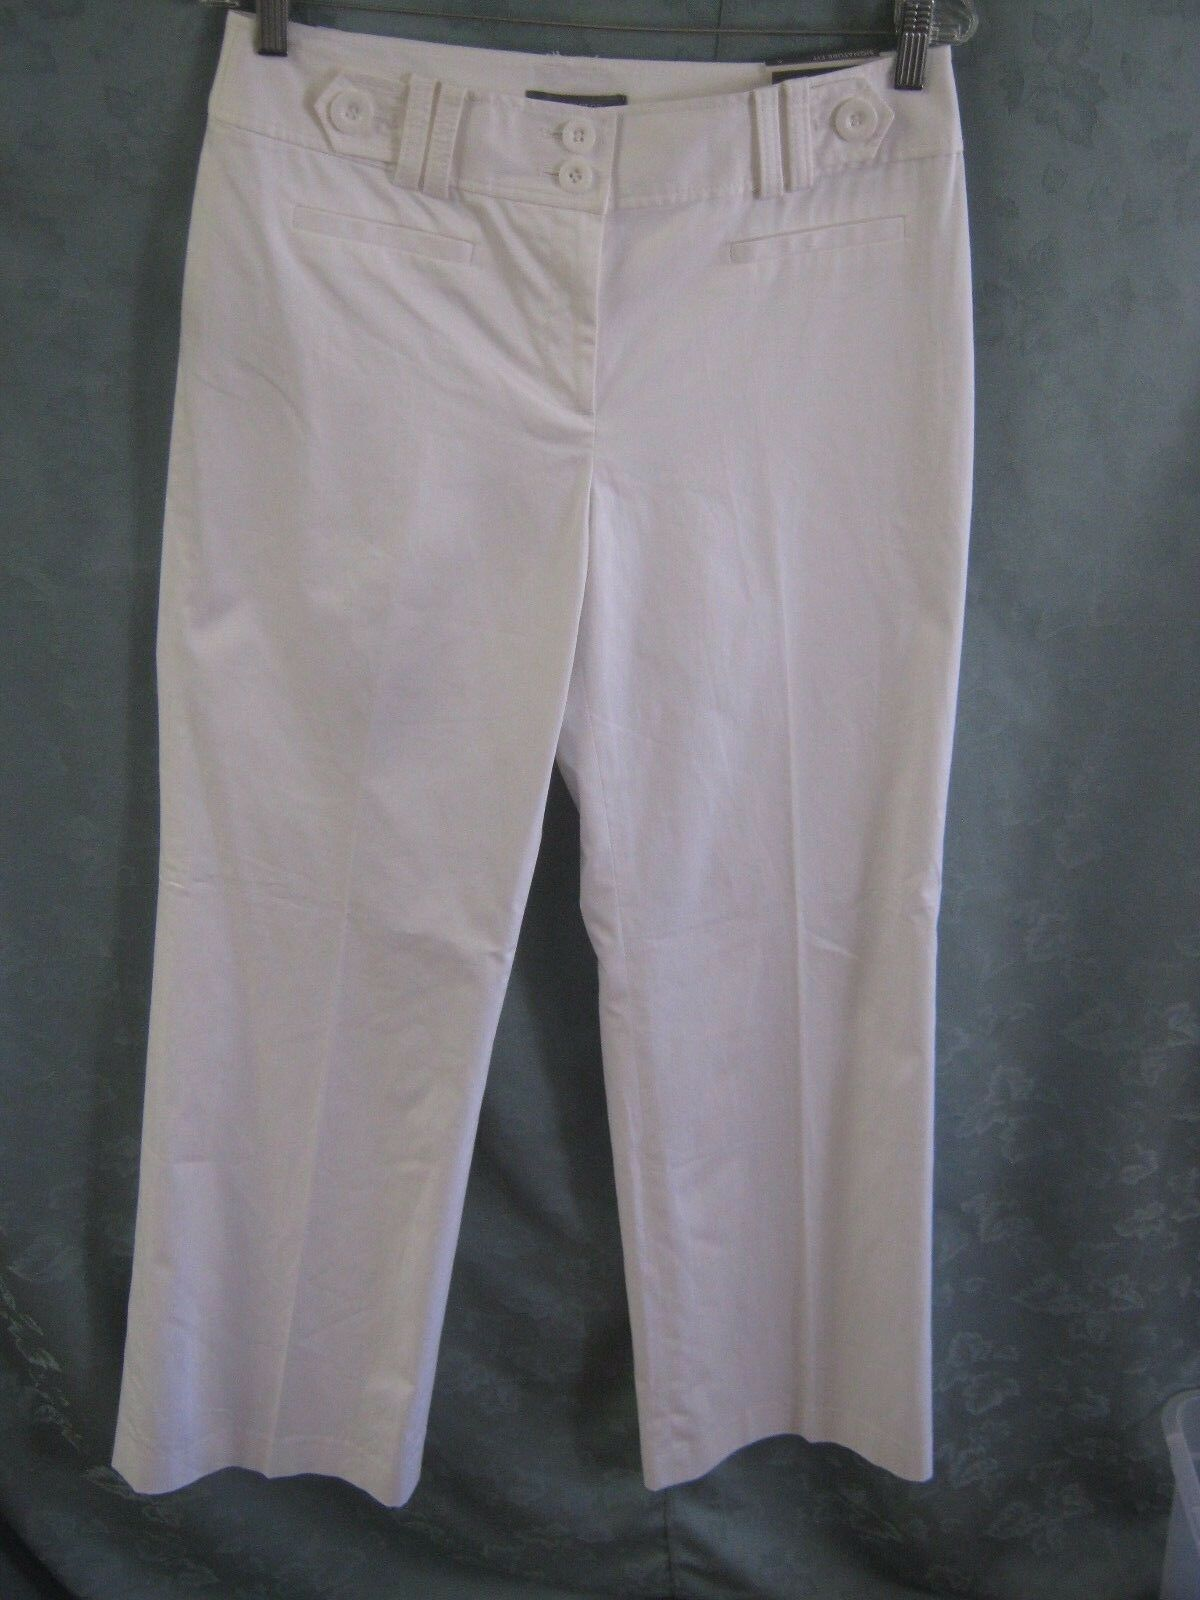 Ann Taylor Signature Fit White Pants Size 6 NWT Fully Lined Wide Leg